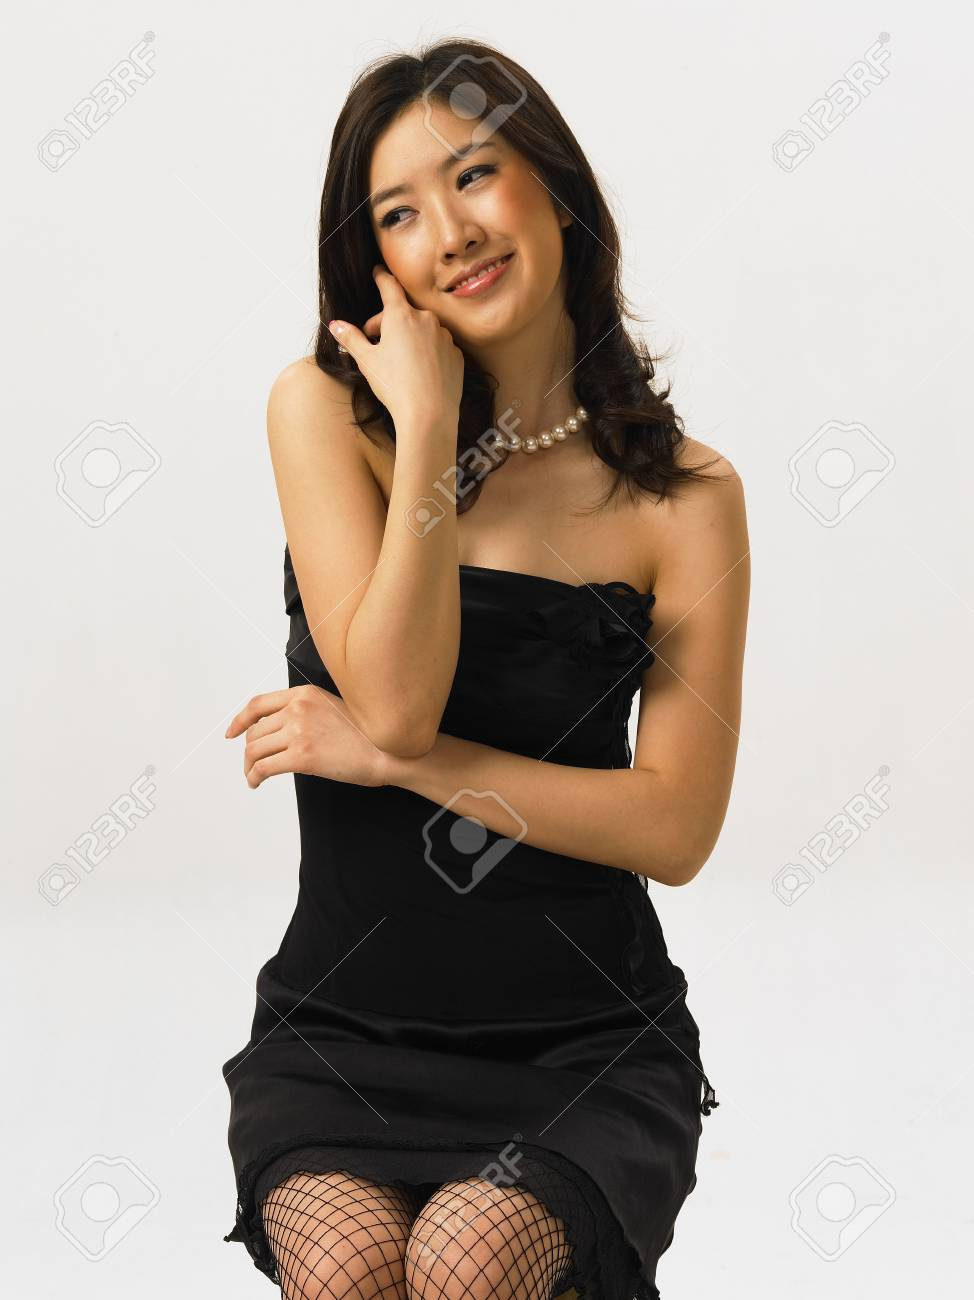 asian woman fashion model posing in a studio as wearing black stock photo picture and royalty free image image 85629480 asian woman fashion model posing in a studio as wearing black